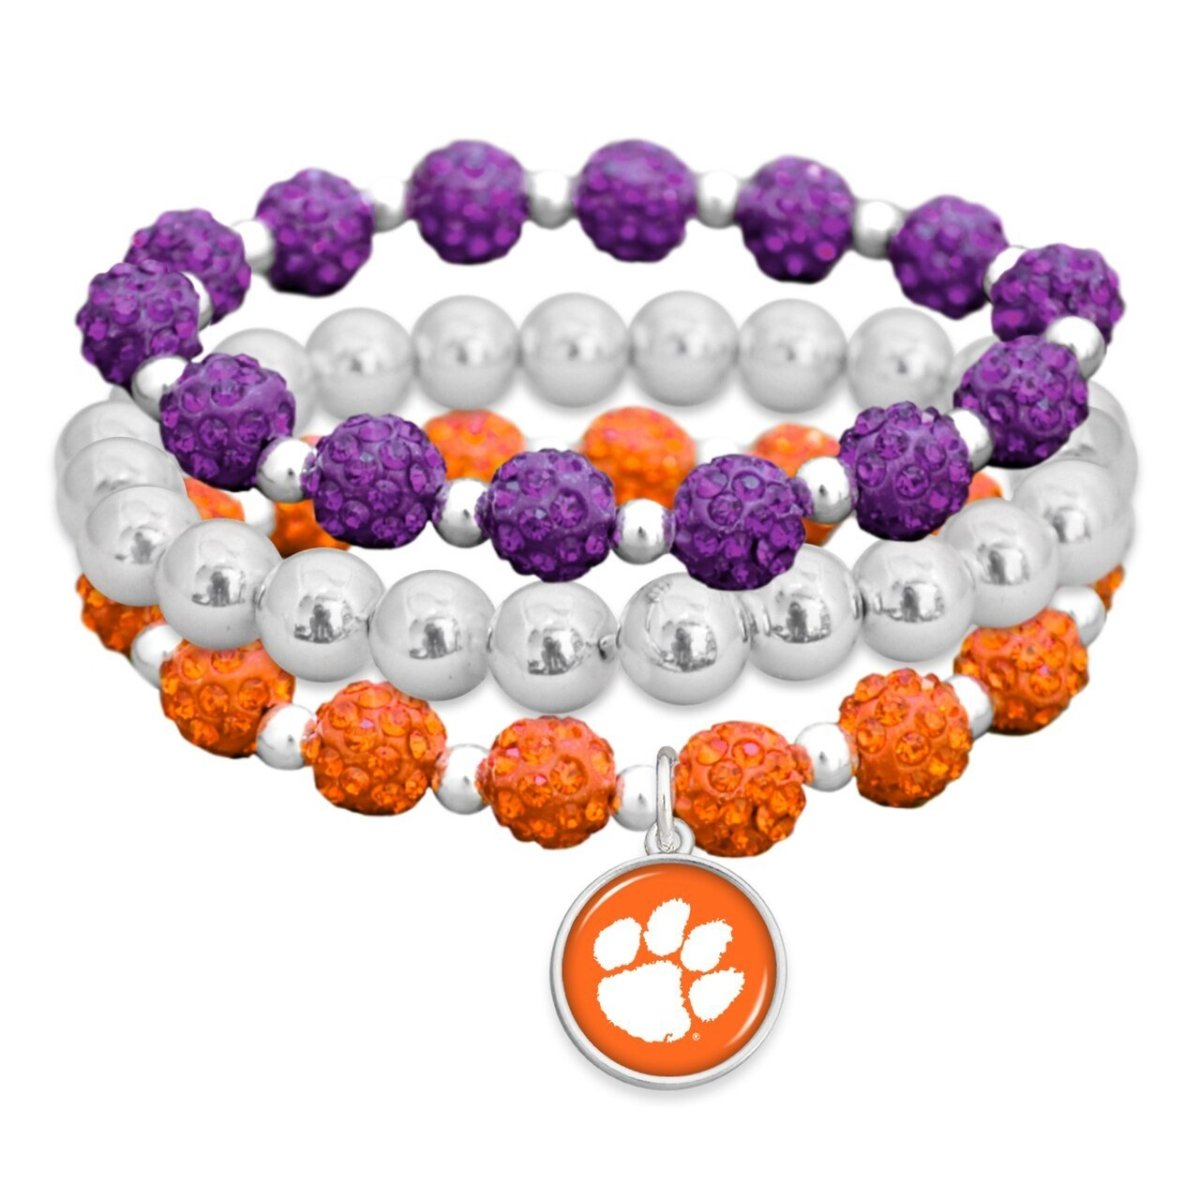 3 Stacked Sparkle Ball Charm Orange With Paw White Purple - Mr. Knickerbocker